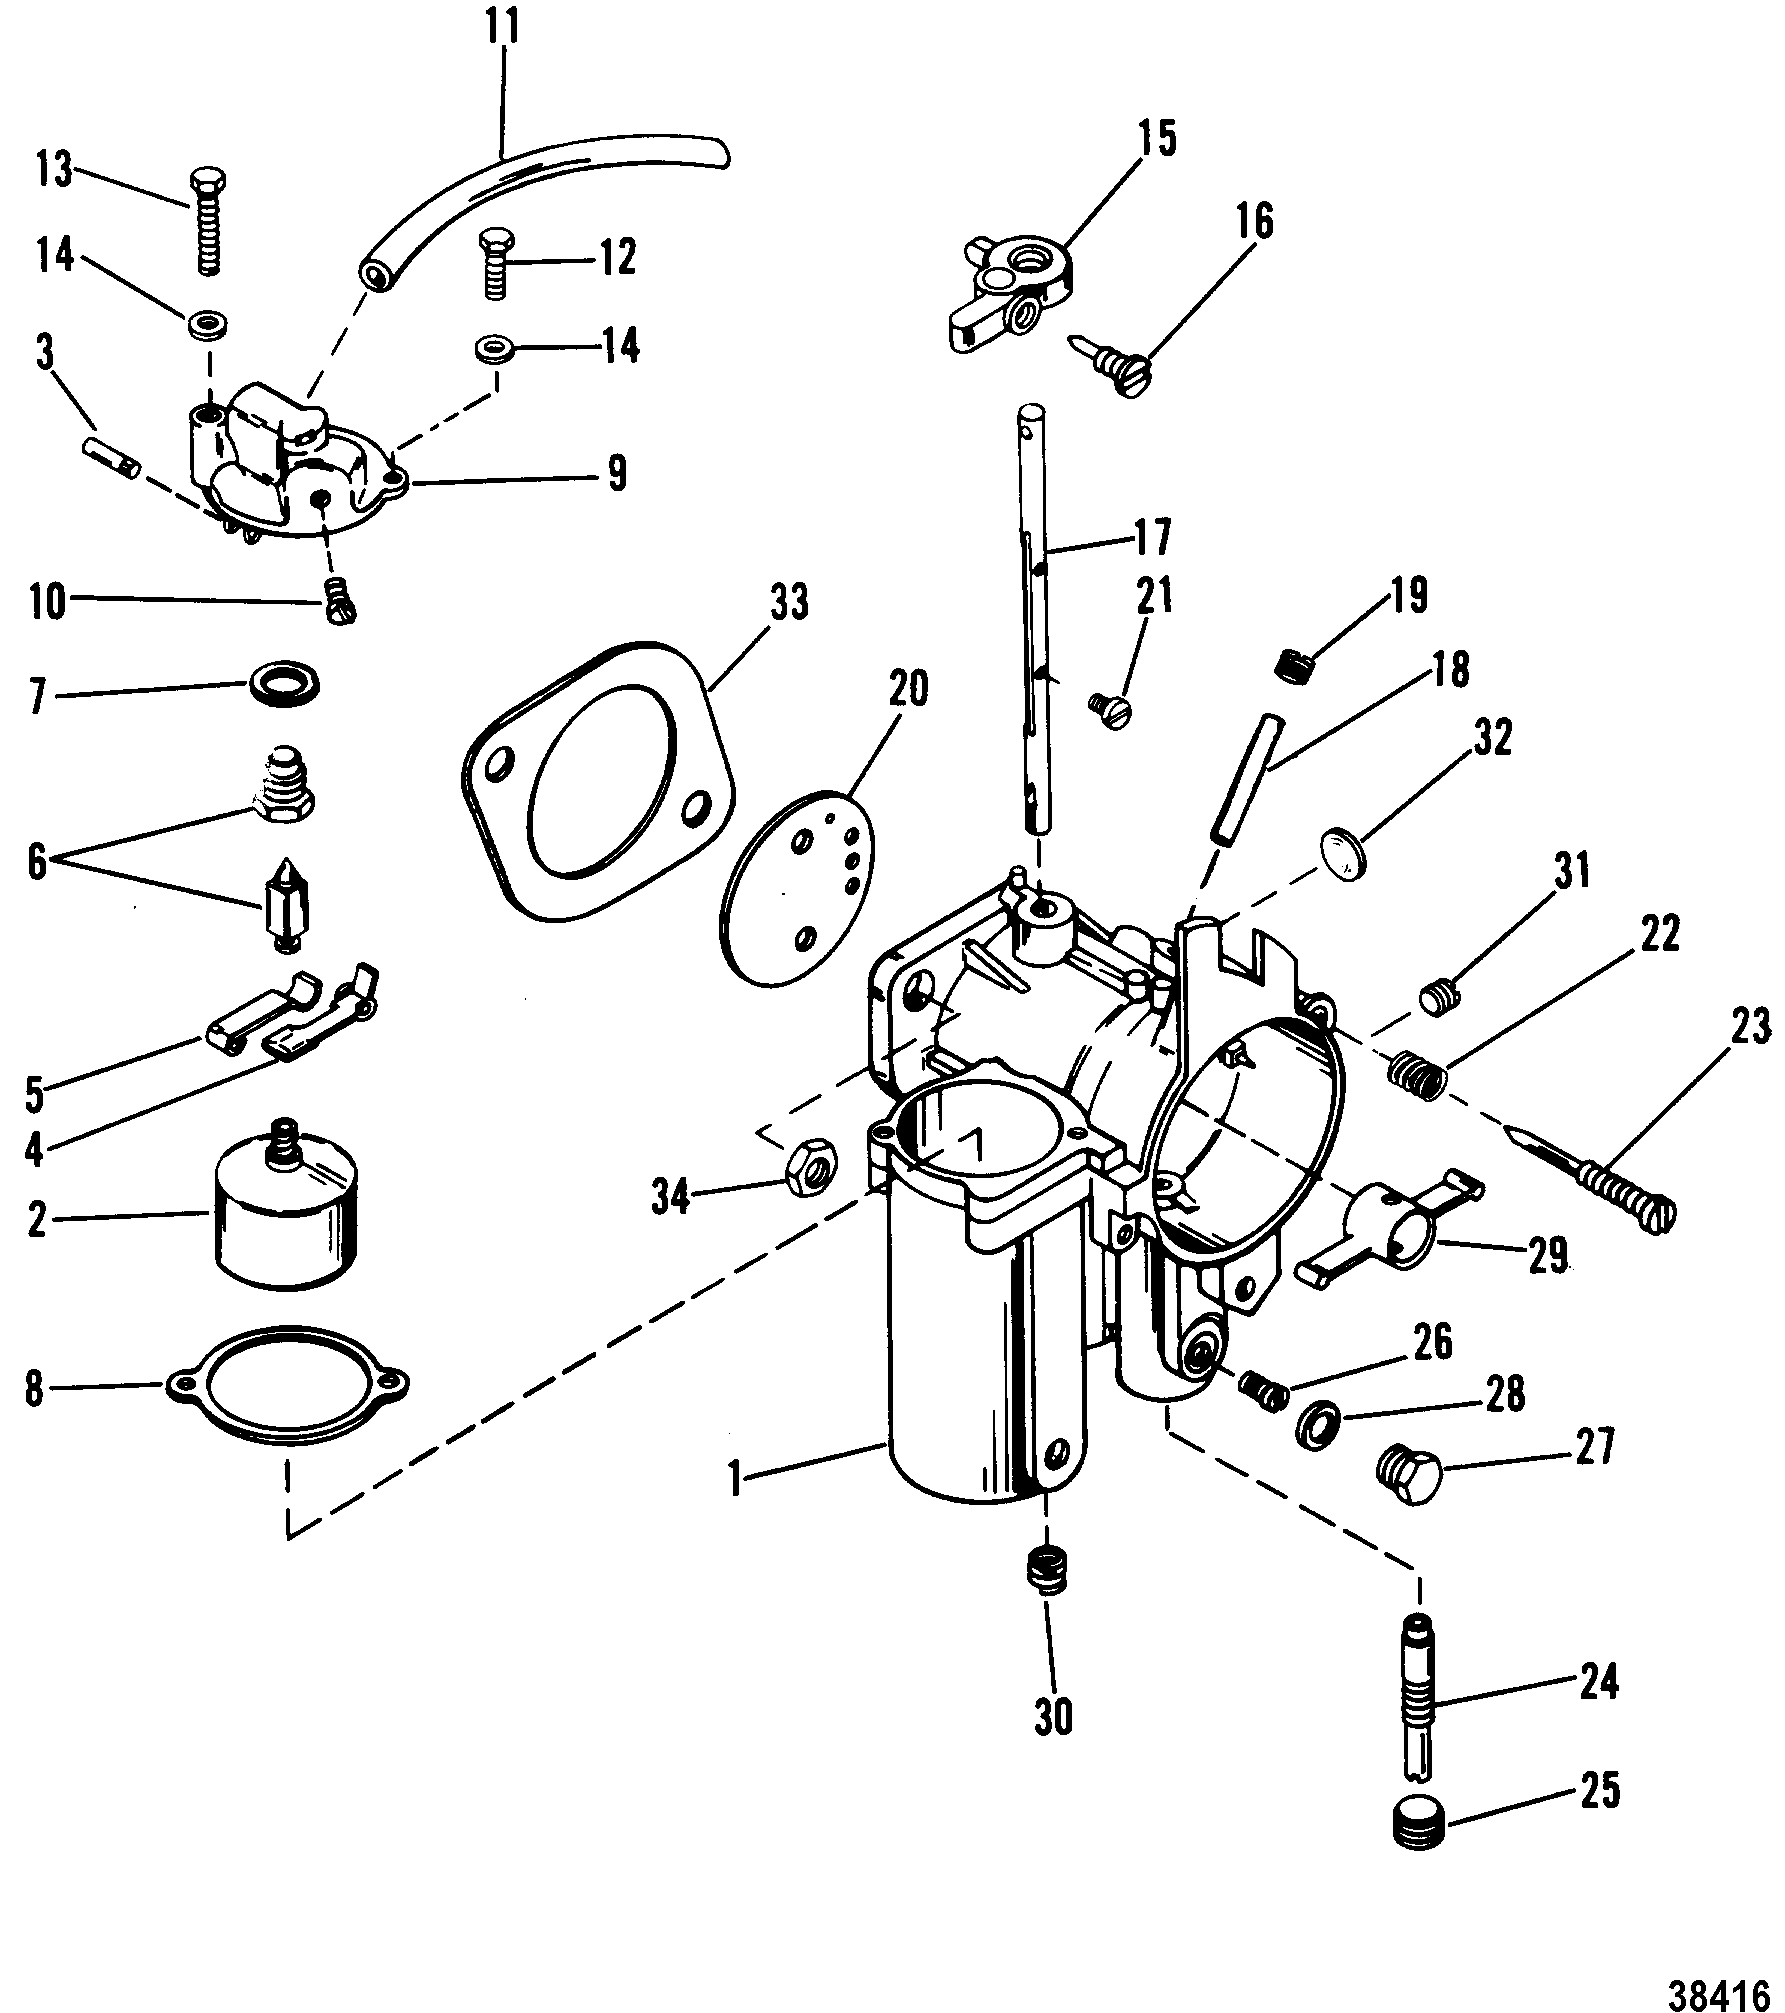 70 hp mercury outboard wiring diagram Images Gallery